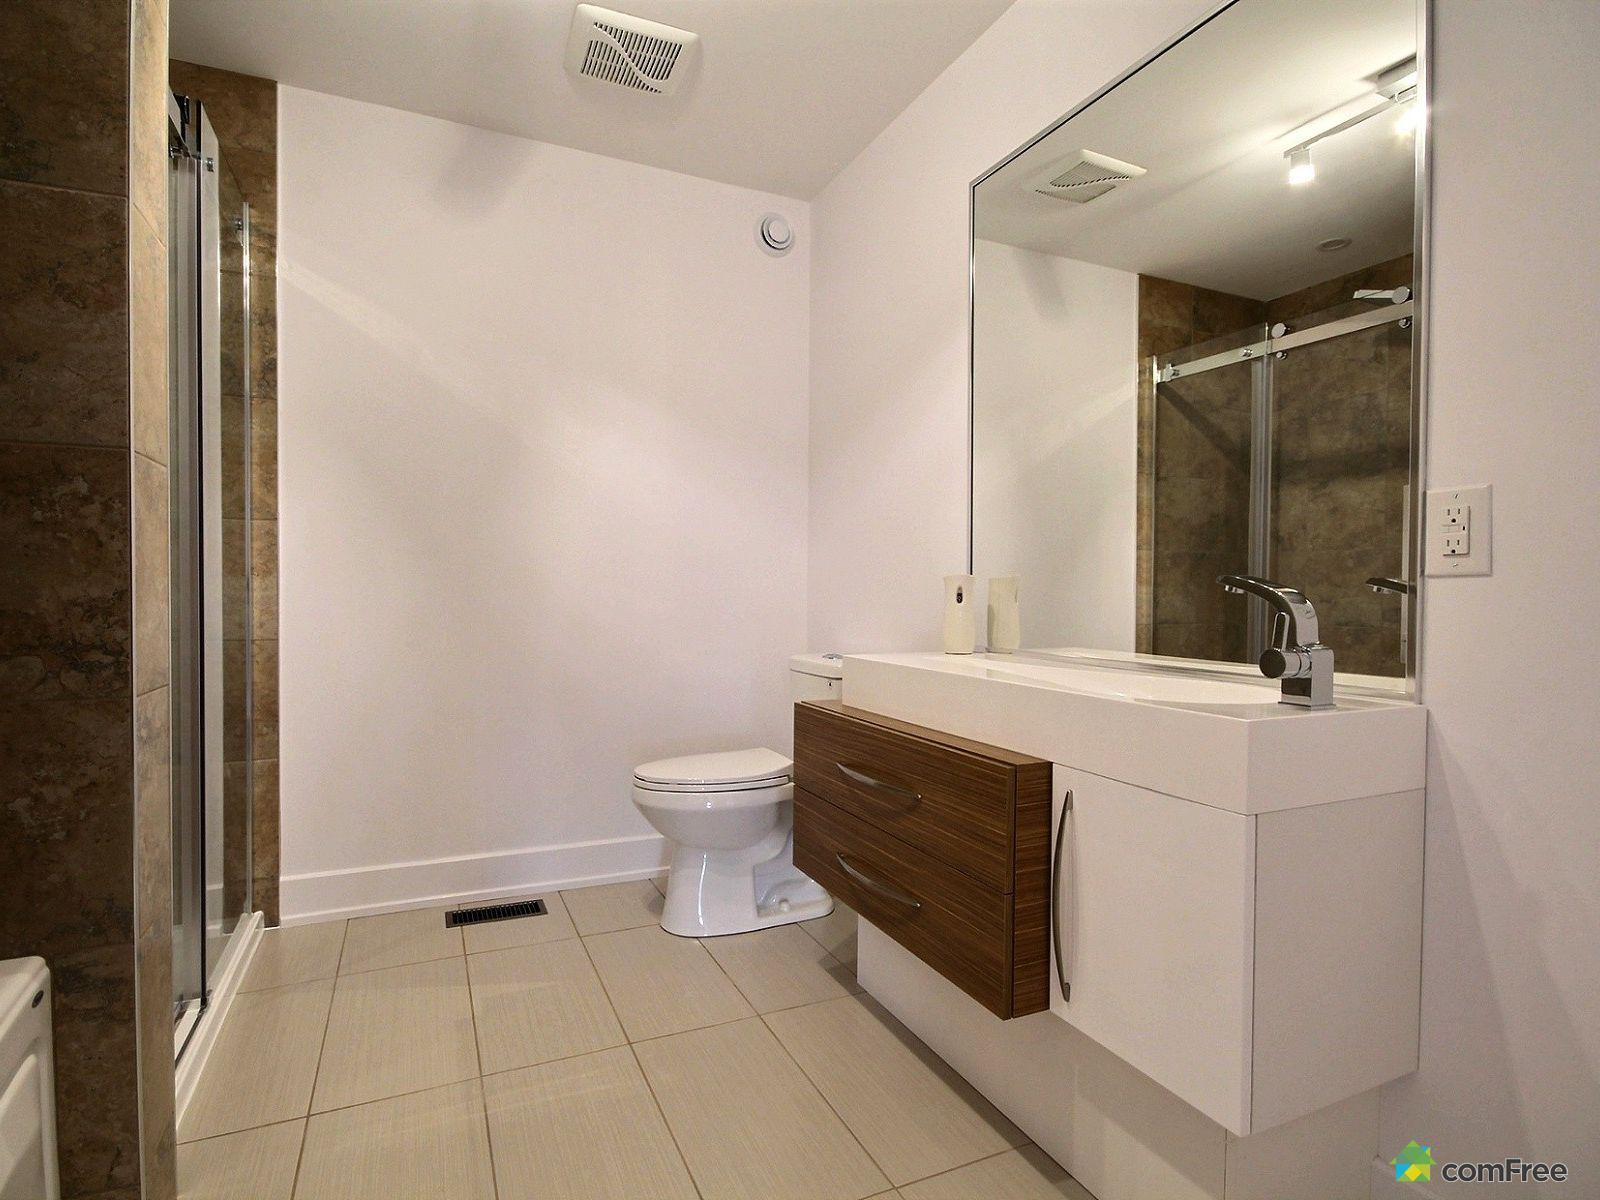 bathroom-new-home-for-sale-rockland-ontario-1600-6589221.jpg